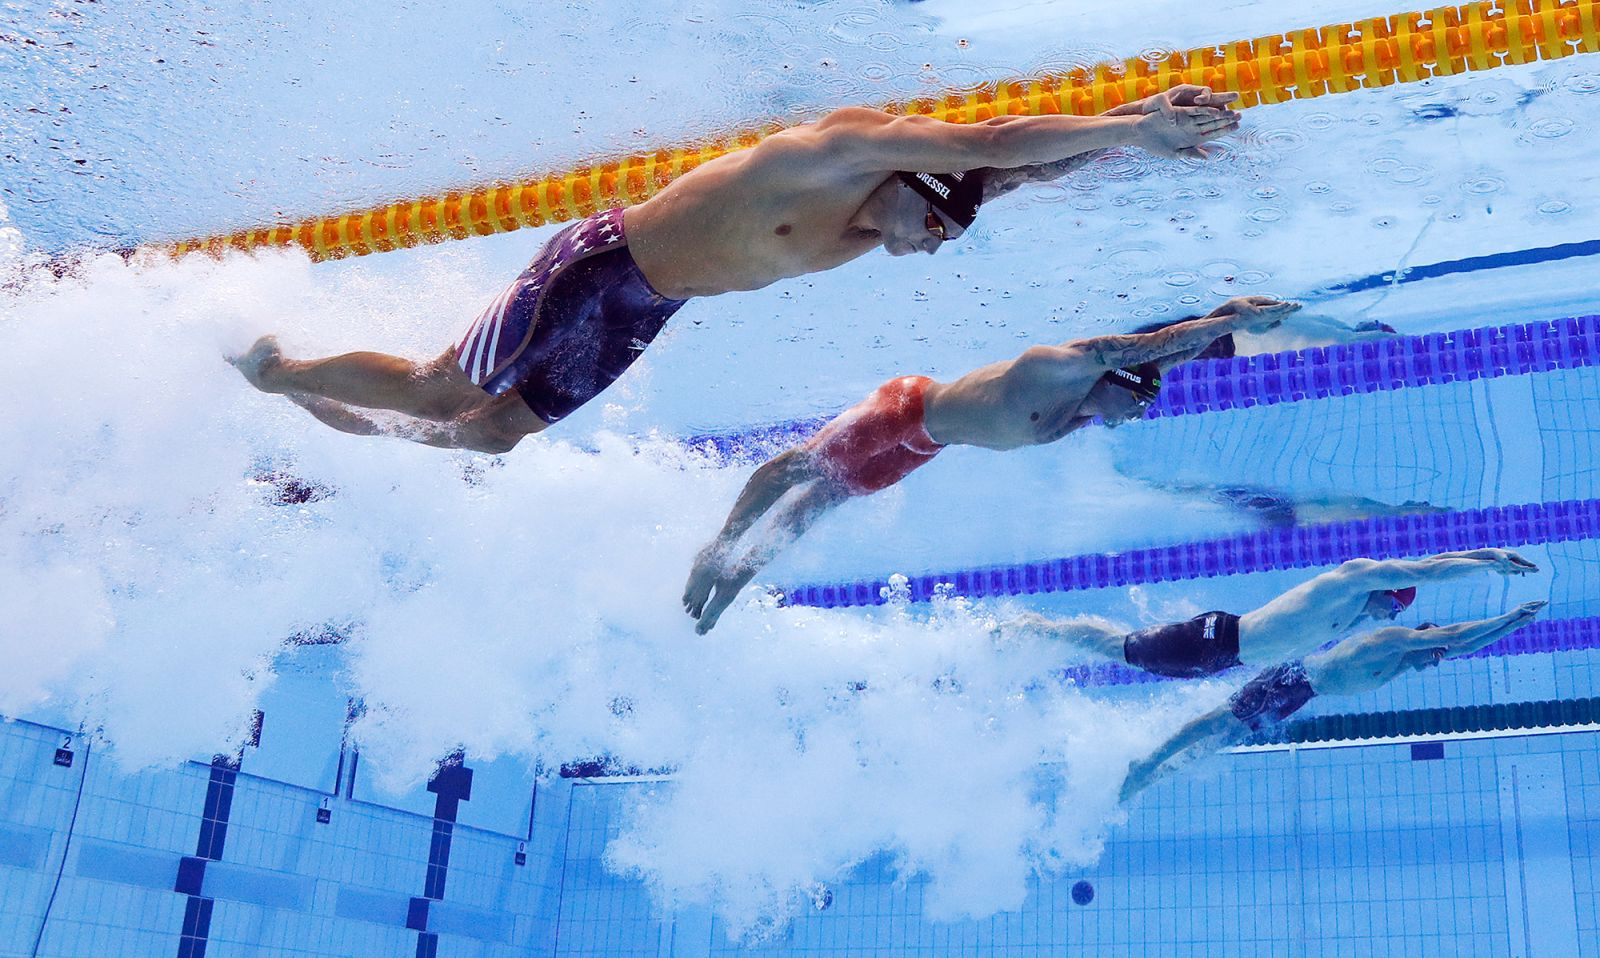 From left, the US' Caeleb Dressel, Brazil's Bruno Fratus, Great Britain's Benjamin Proud and Italy's Lorenzo Zazzeri swim the 50-meter freestyle final on Sunday, August 1.Dressel went on to winwith an Olympic record time of 21.07 seconds.